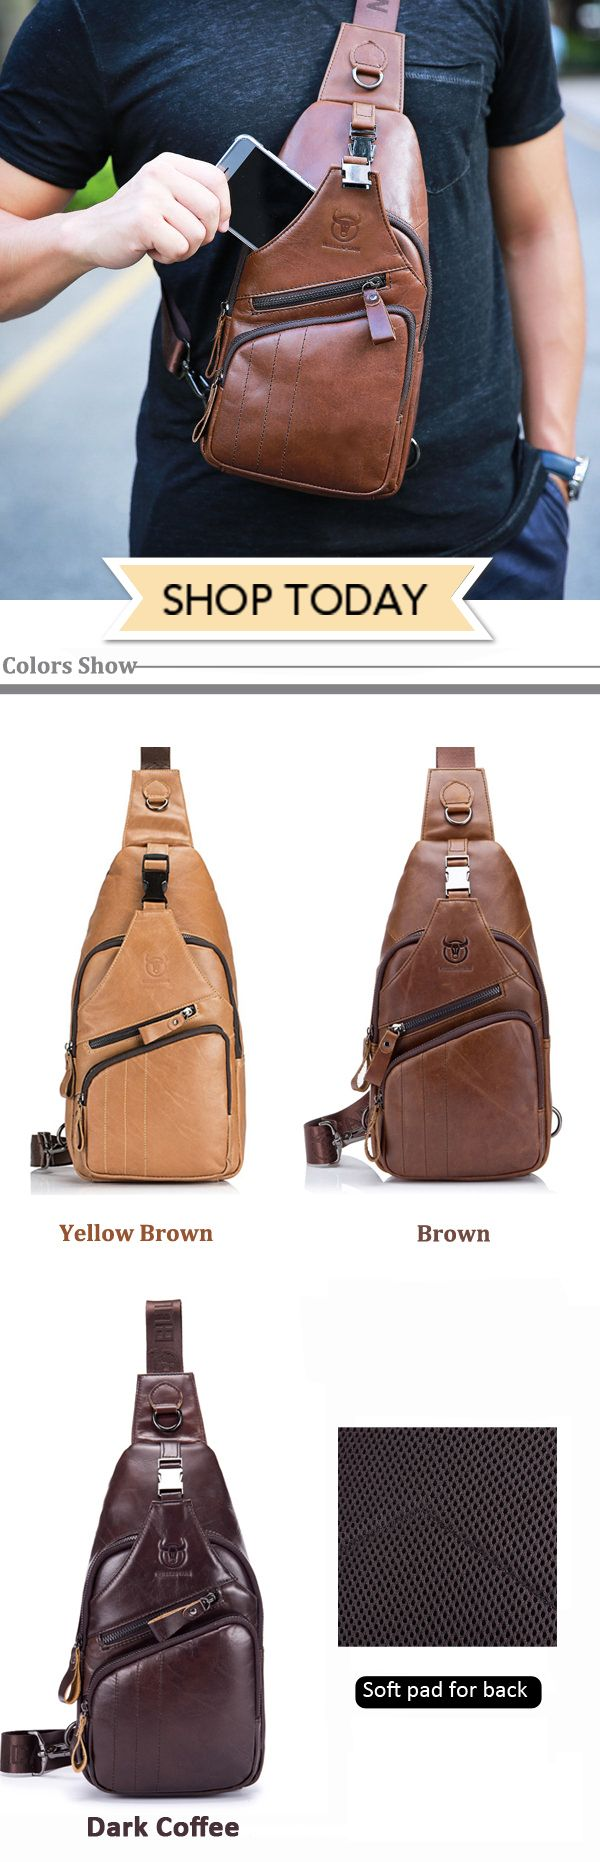 Leather Casual Chest Bag/Single-shoulder Crossbody Bag #mensfashion #outfit #fashion